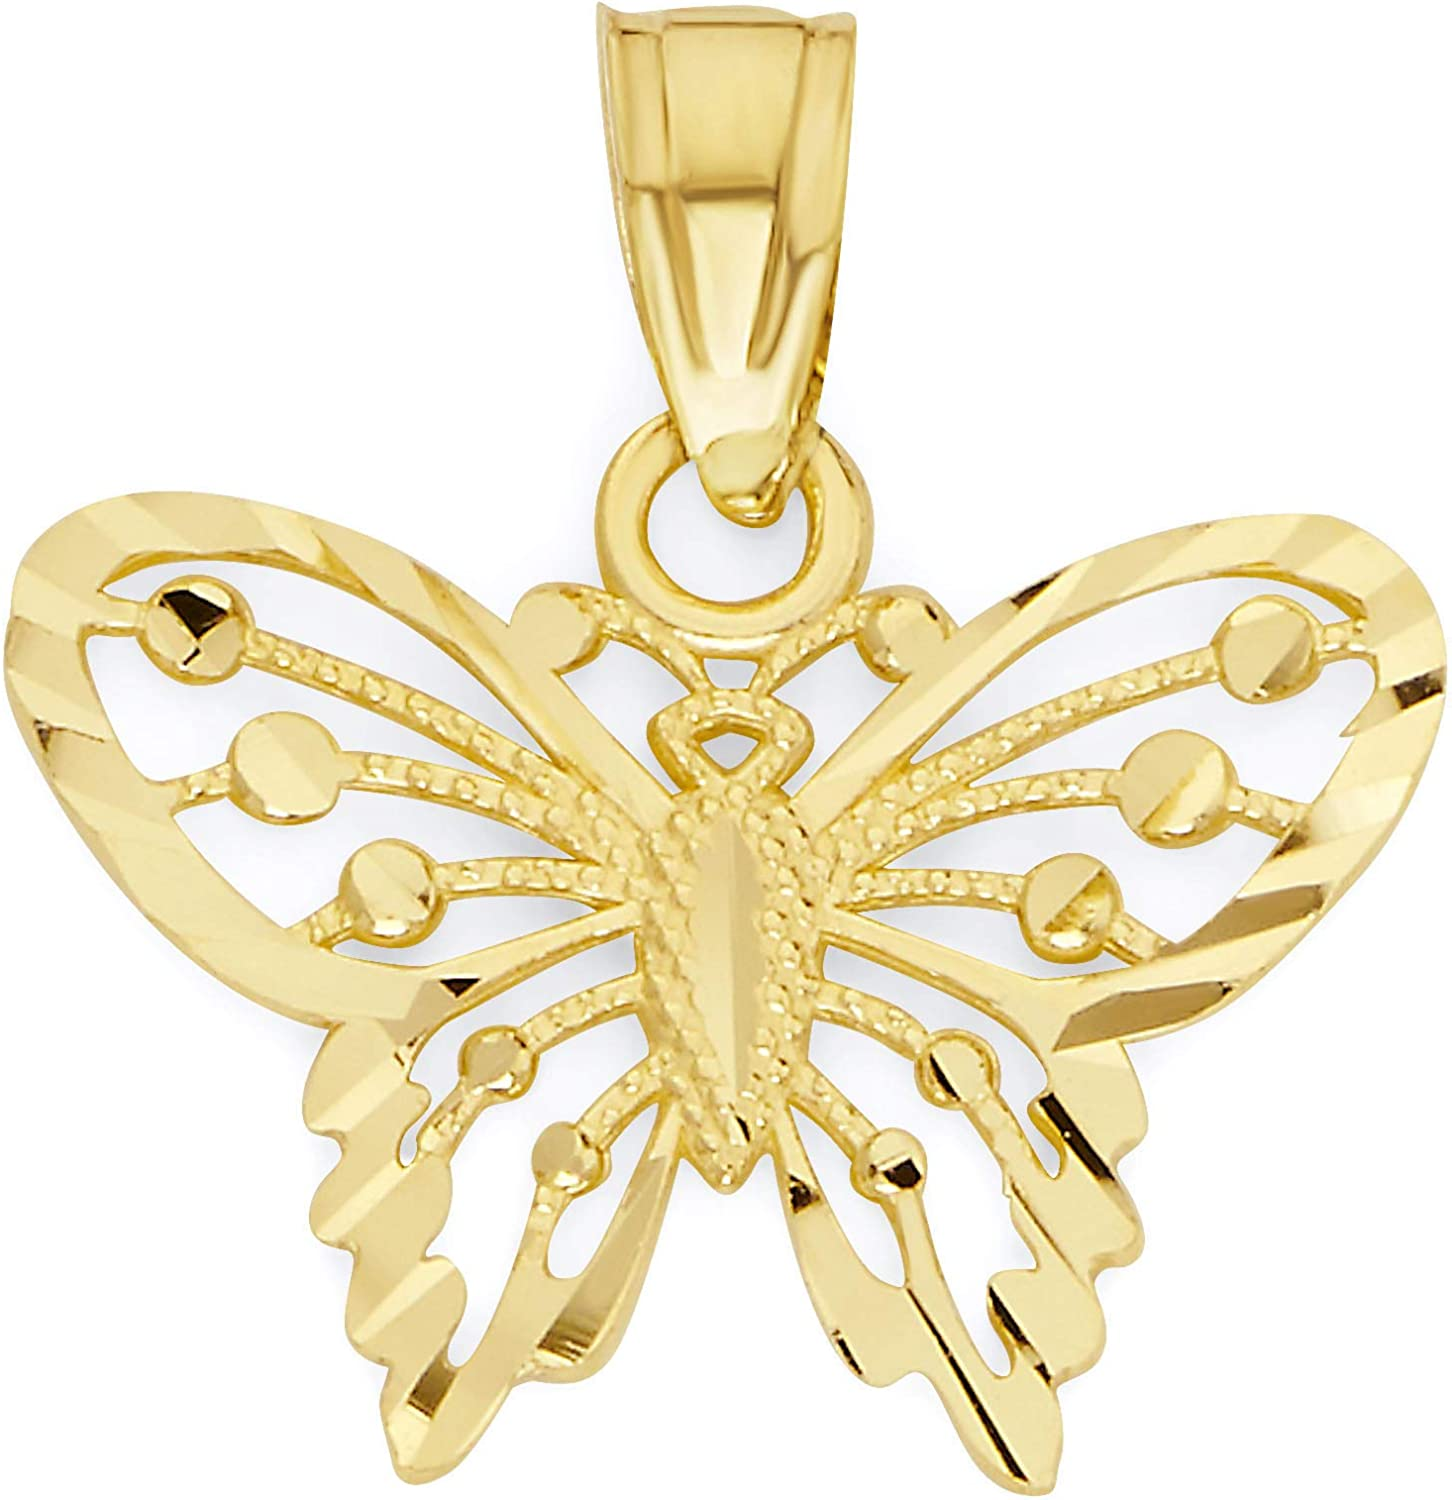 10k Solid Real Gold Butterfly Pendant Dainty Animal Charm Casual Everyday Wear Jewelry Charm